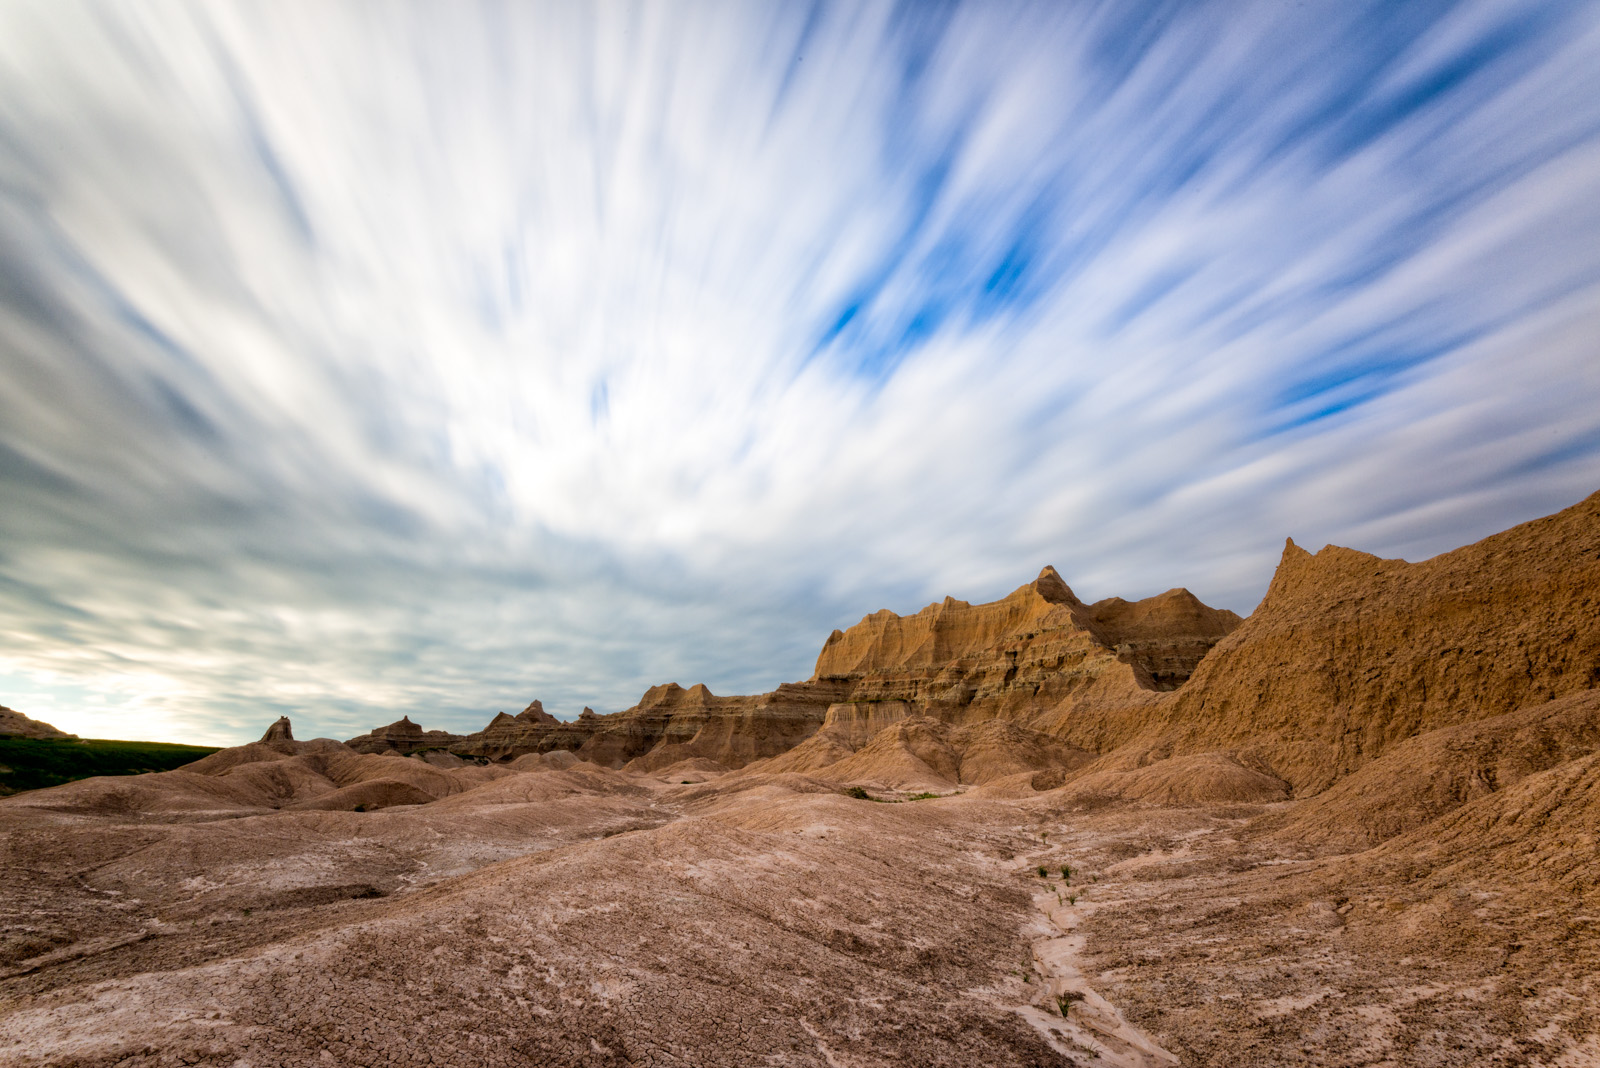 Sweeping skies over Badlands National Park, South Dakota. Nikon D800e with 16-35mm Nikkor lens, 74s@ f/22, ISO 100.